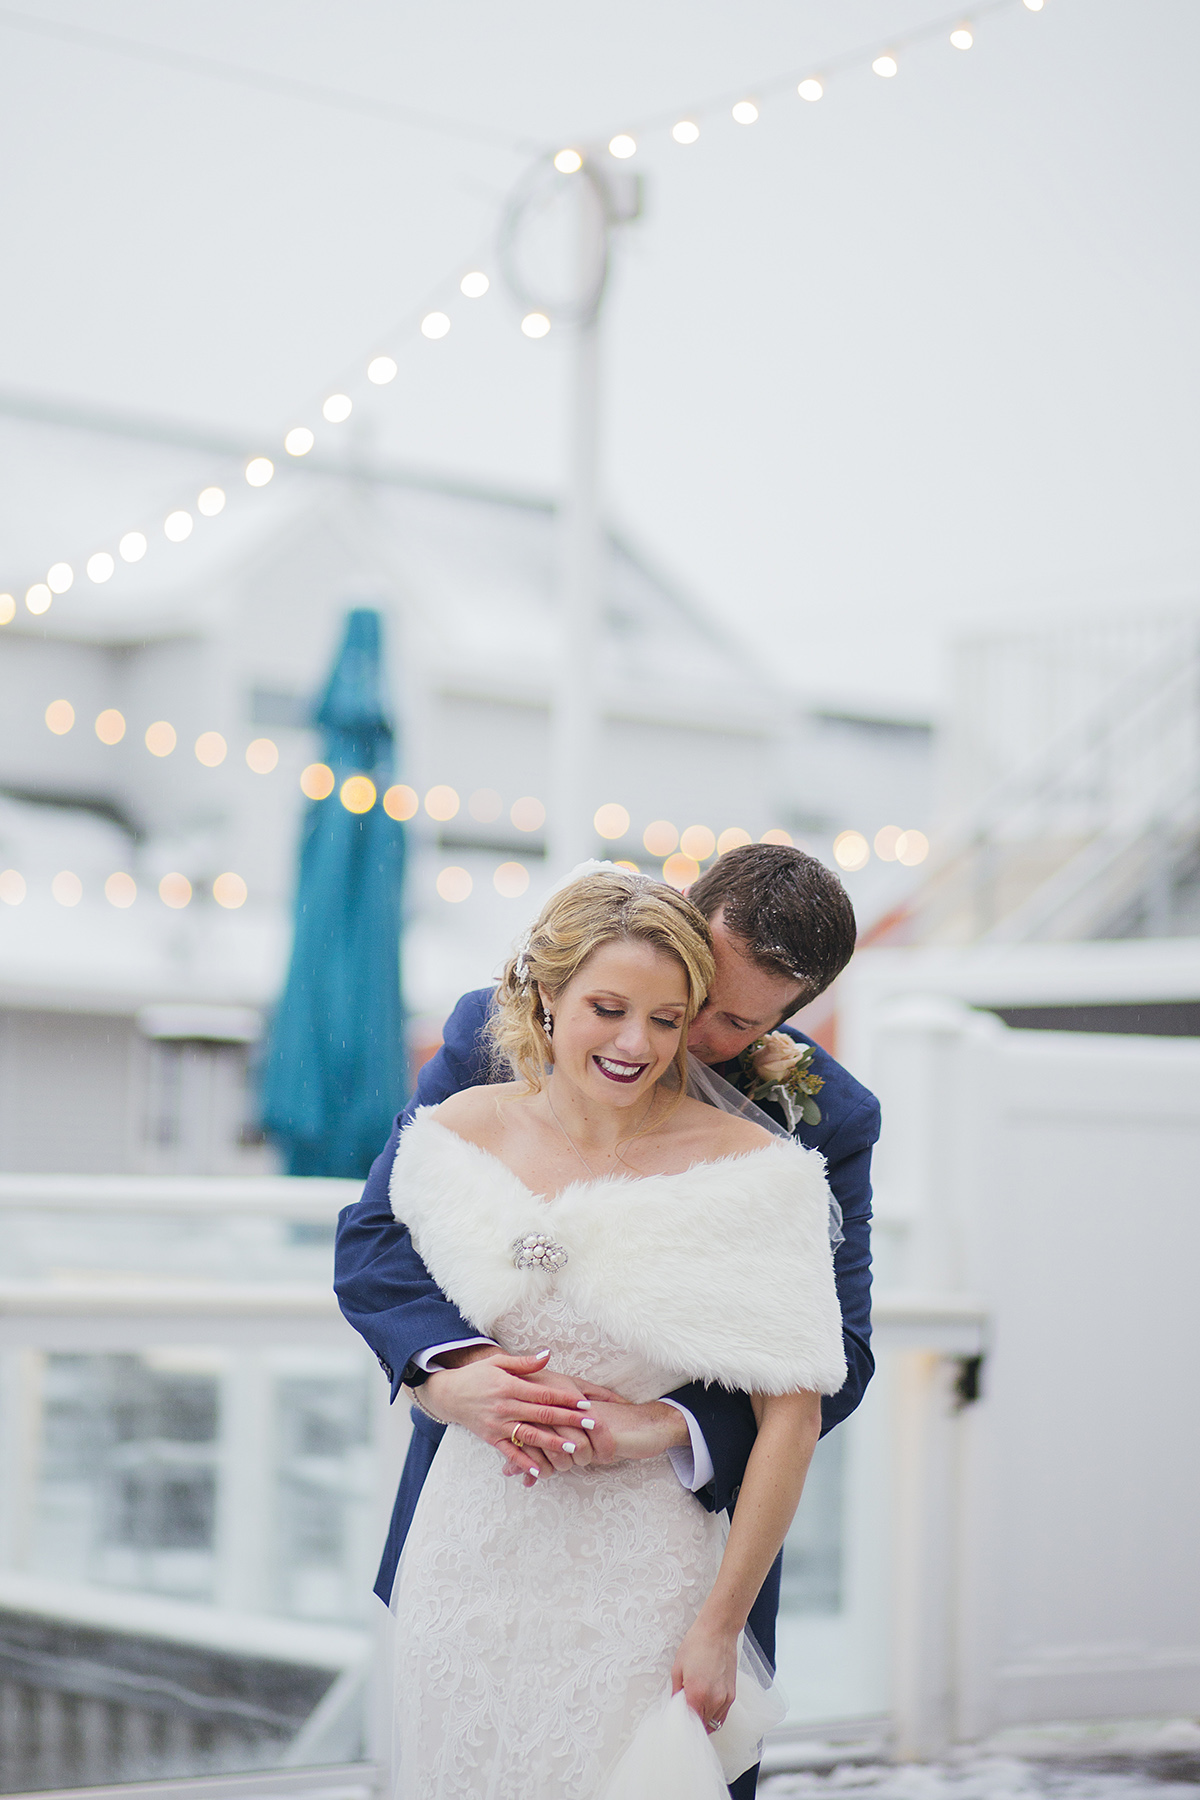 The Reeds Stone Harbor Wedding Photo